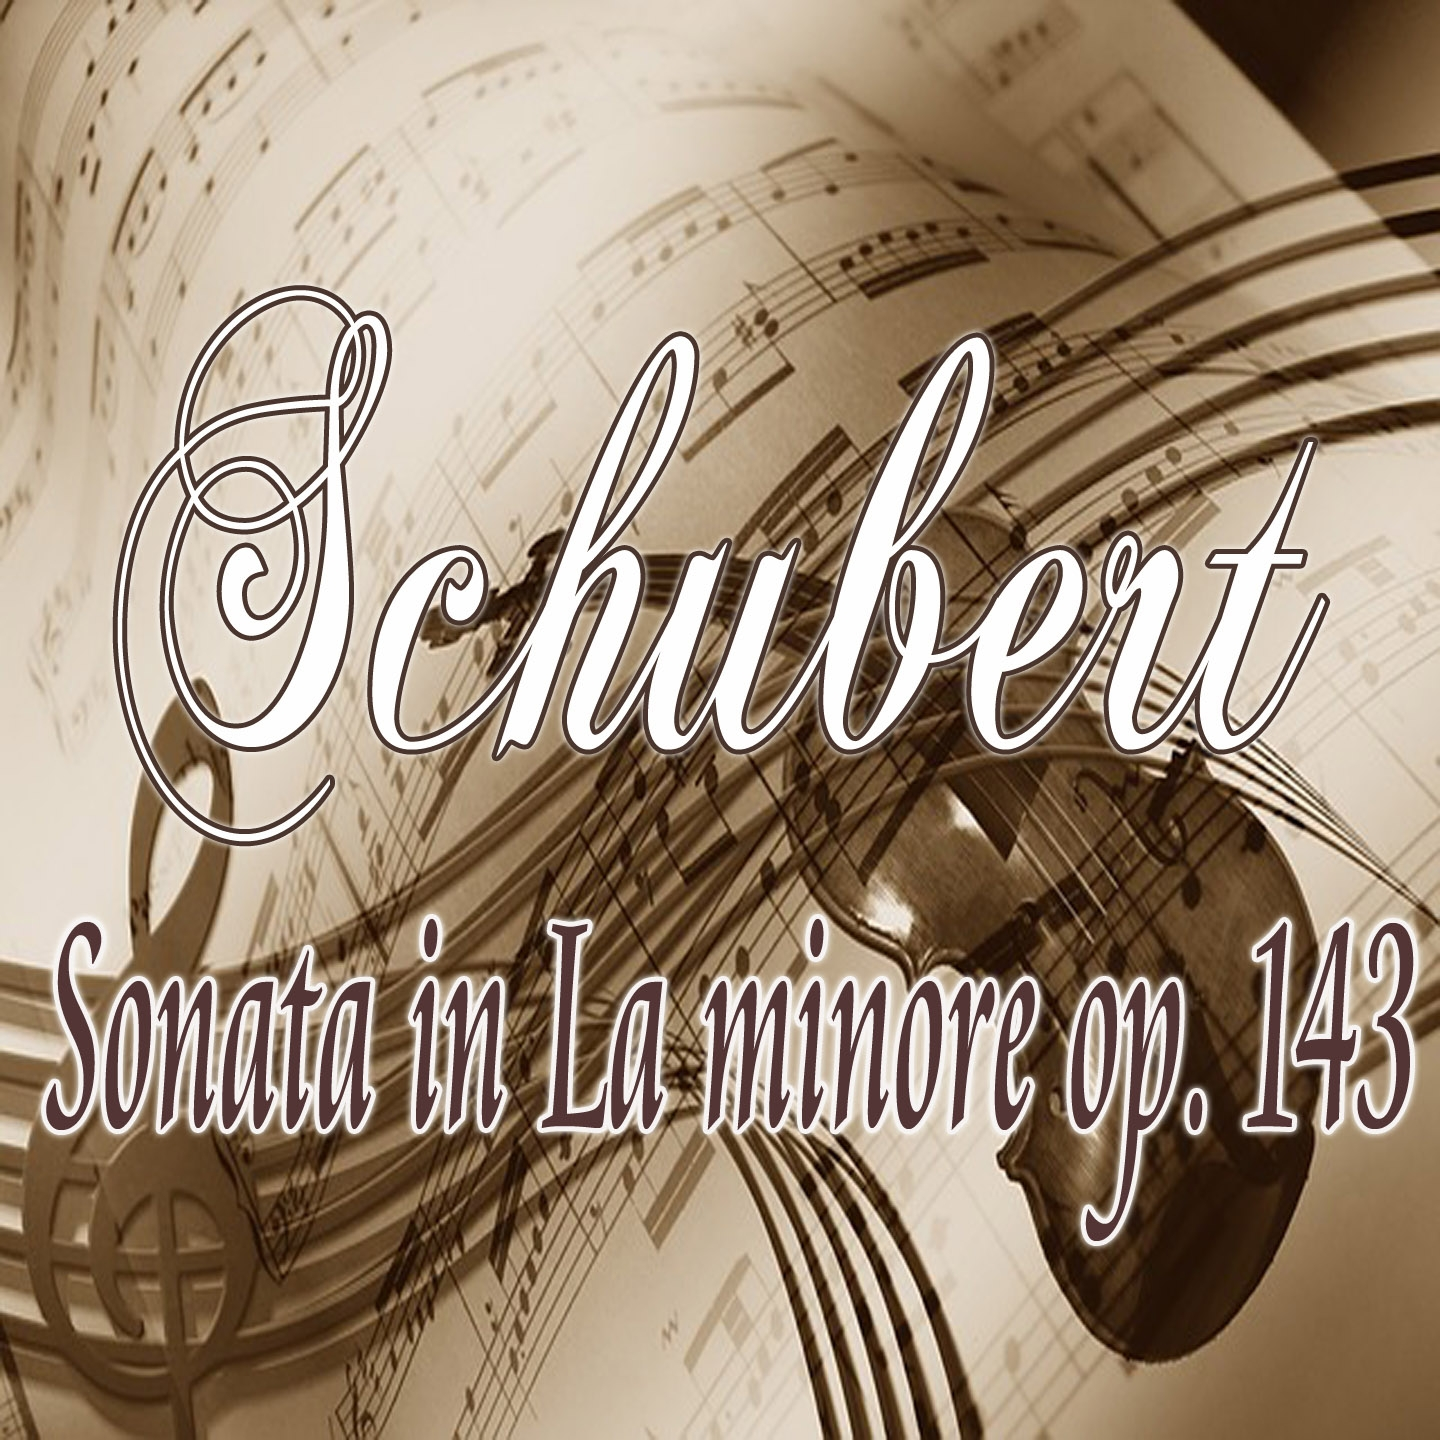 Schubert: Sonata in A Minor, Op. Posth. 143